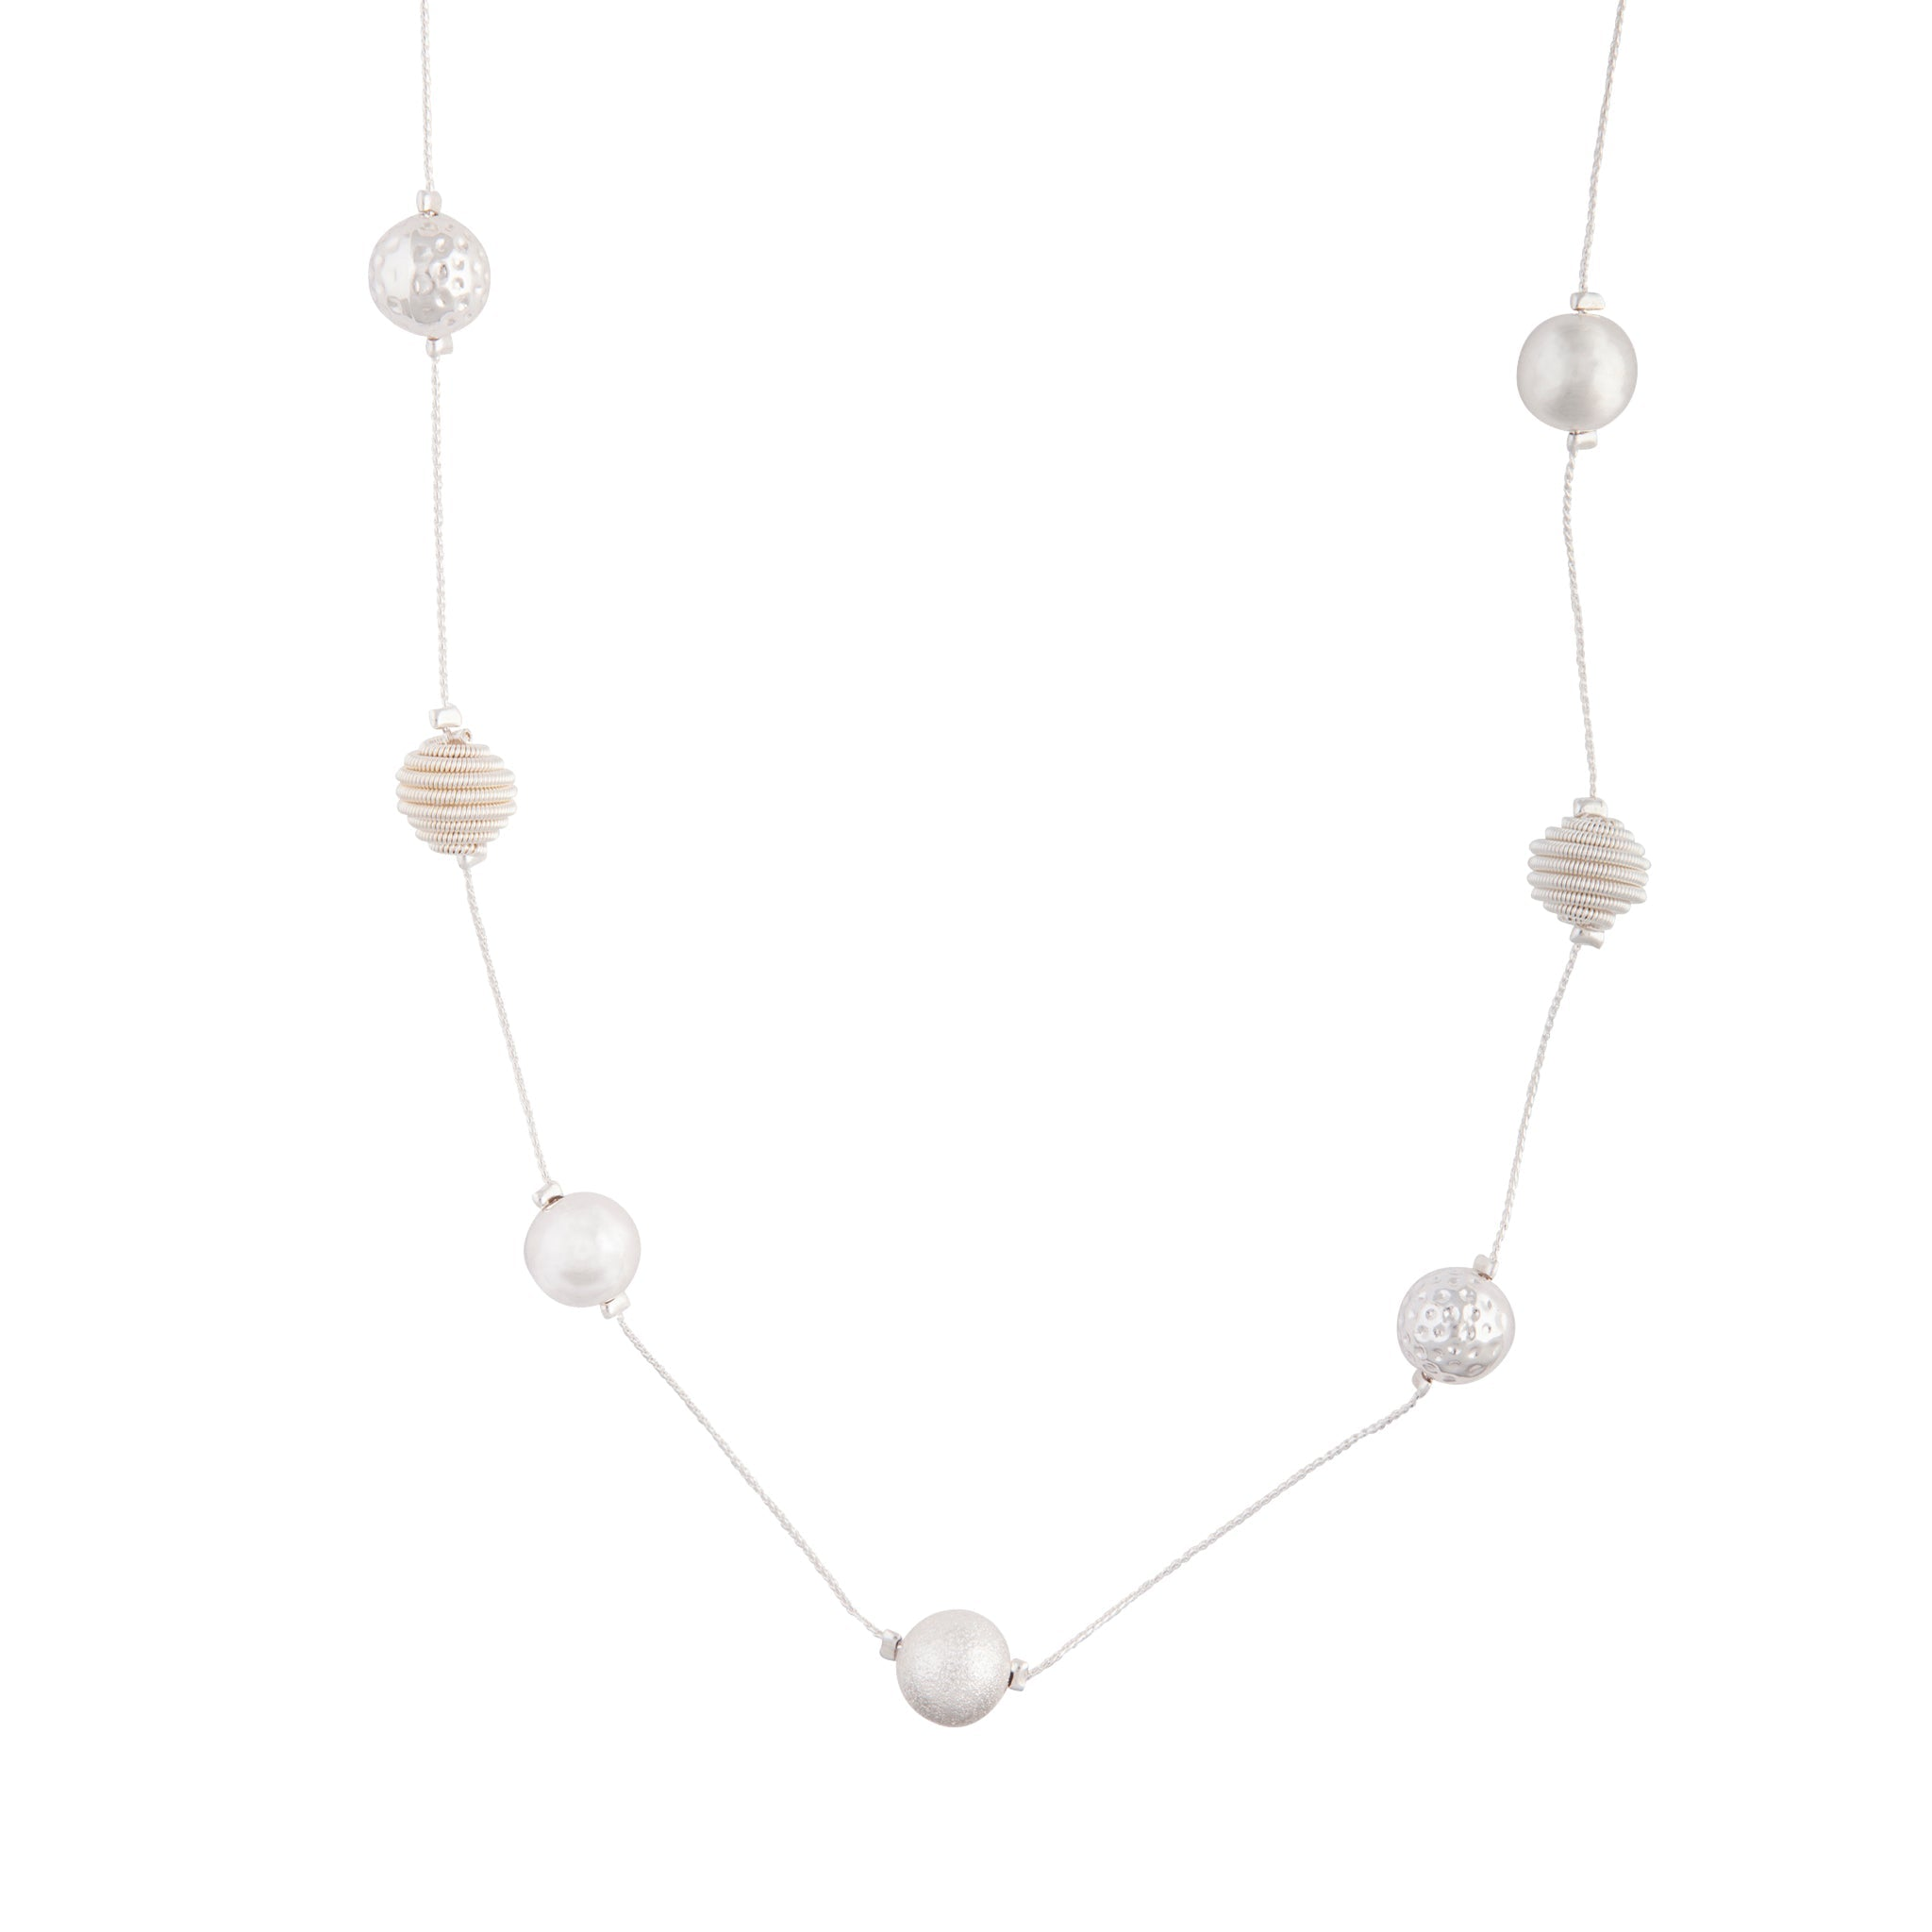 Mixed Silver Ball Station Lariat Necklace